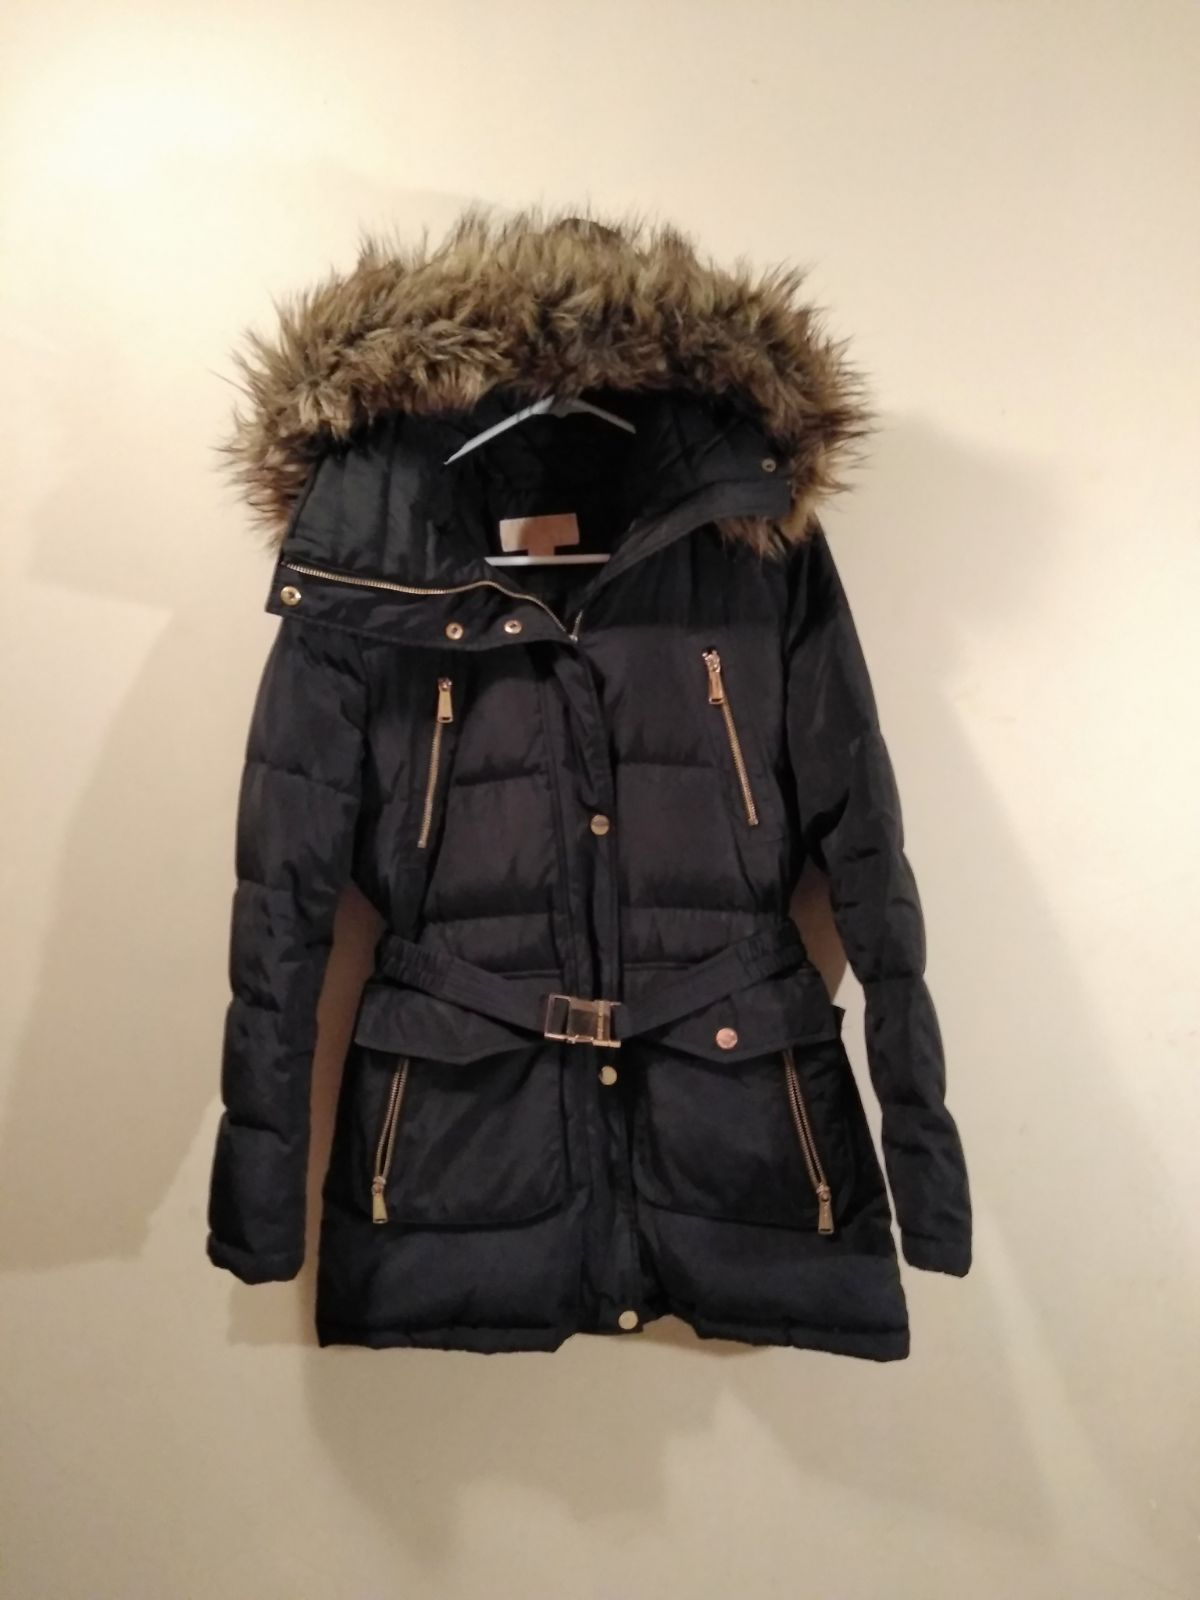 Michael Kors Winter Jacket by Michael Kors